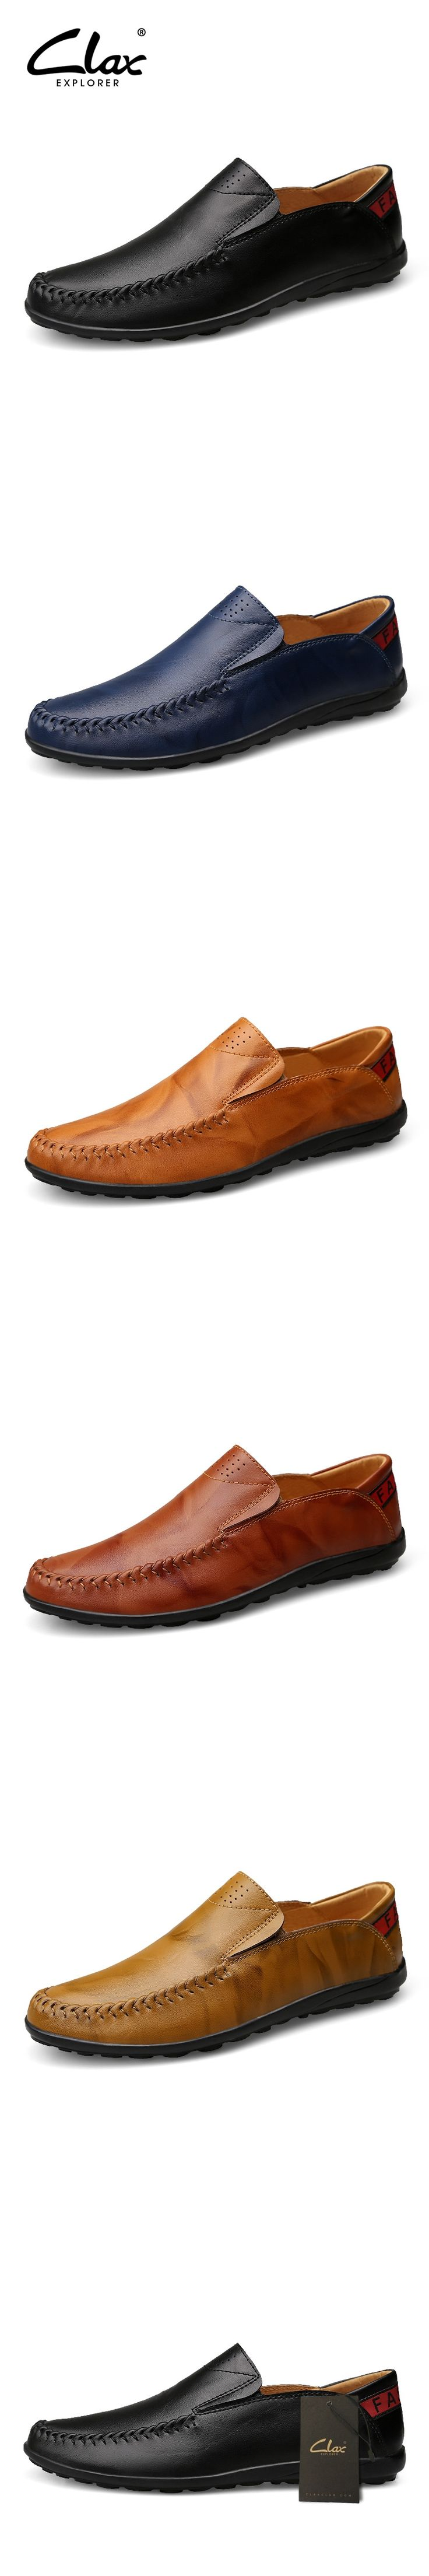 Clax Men Loafers Genuine Leather 2017 Spring Summer Men's Designer Flat Shoes Casual Driving Shoe Moccasin Luxury Brand